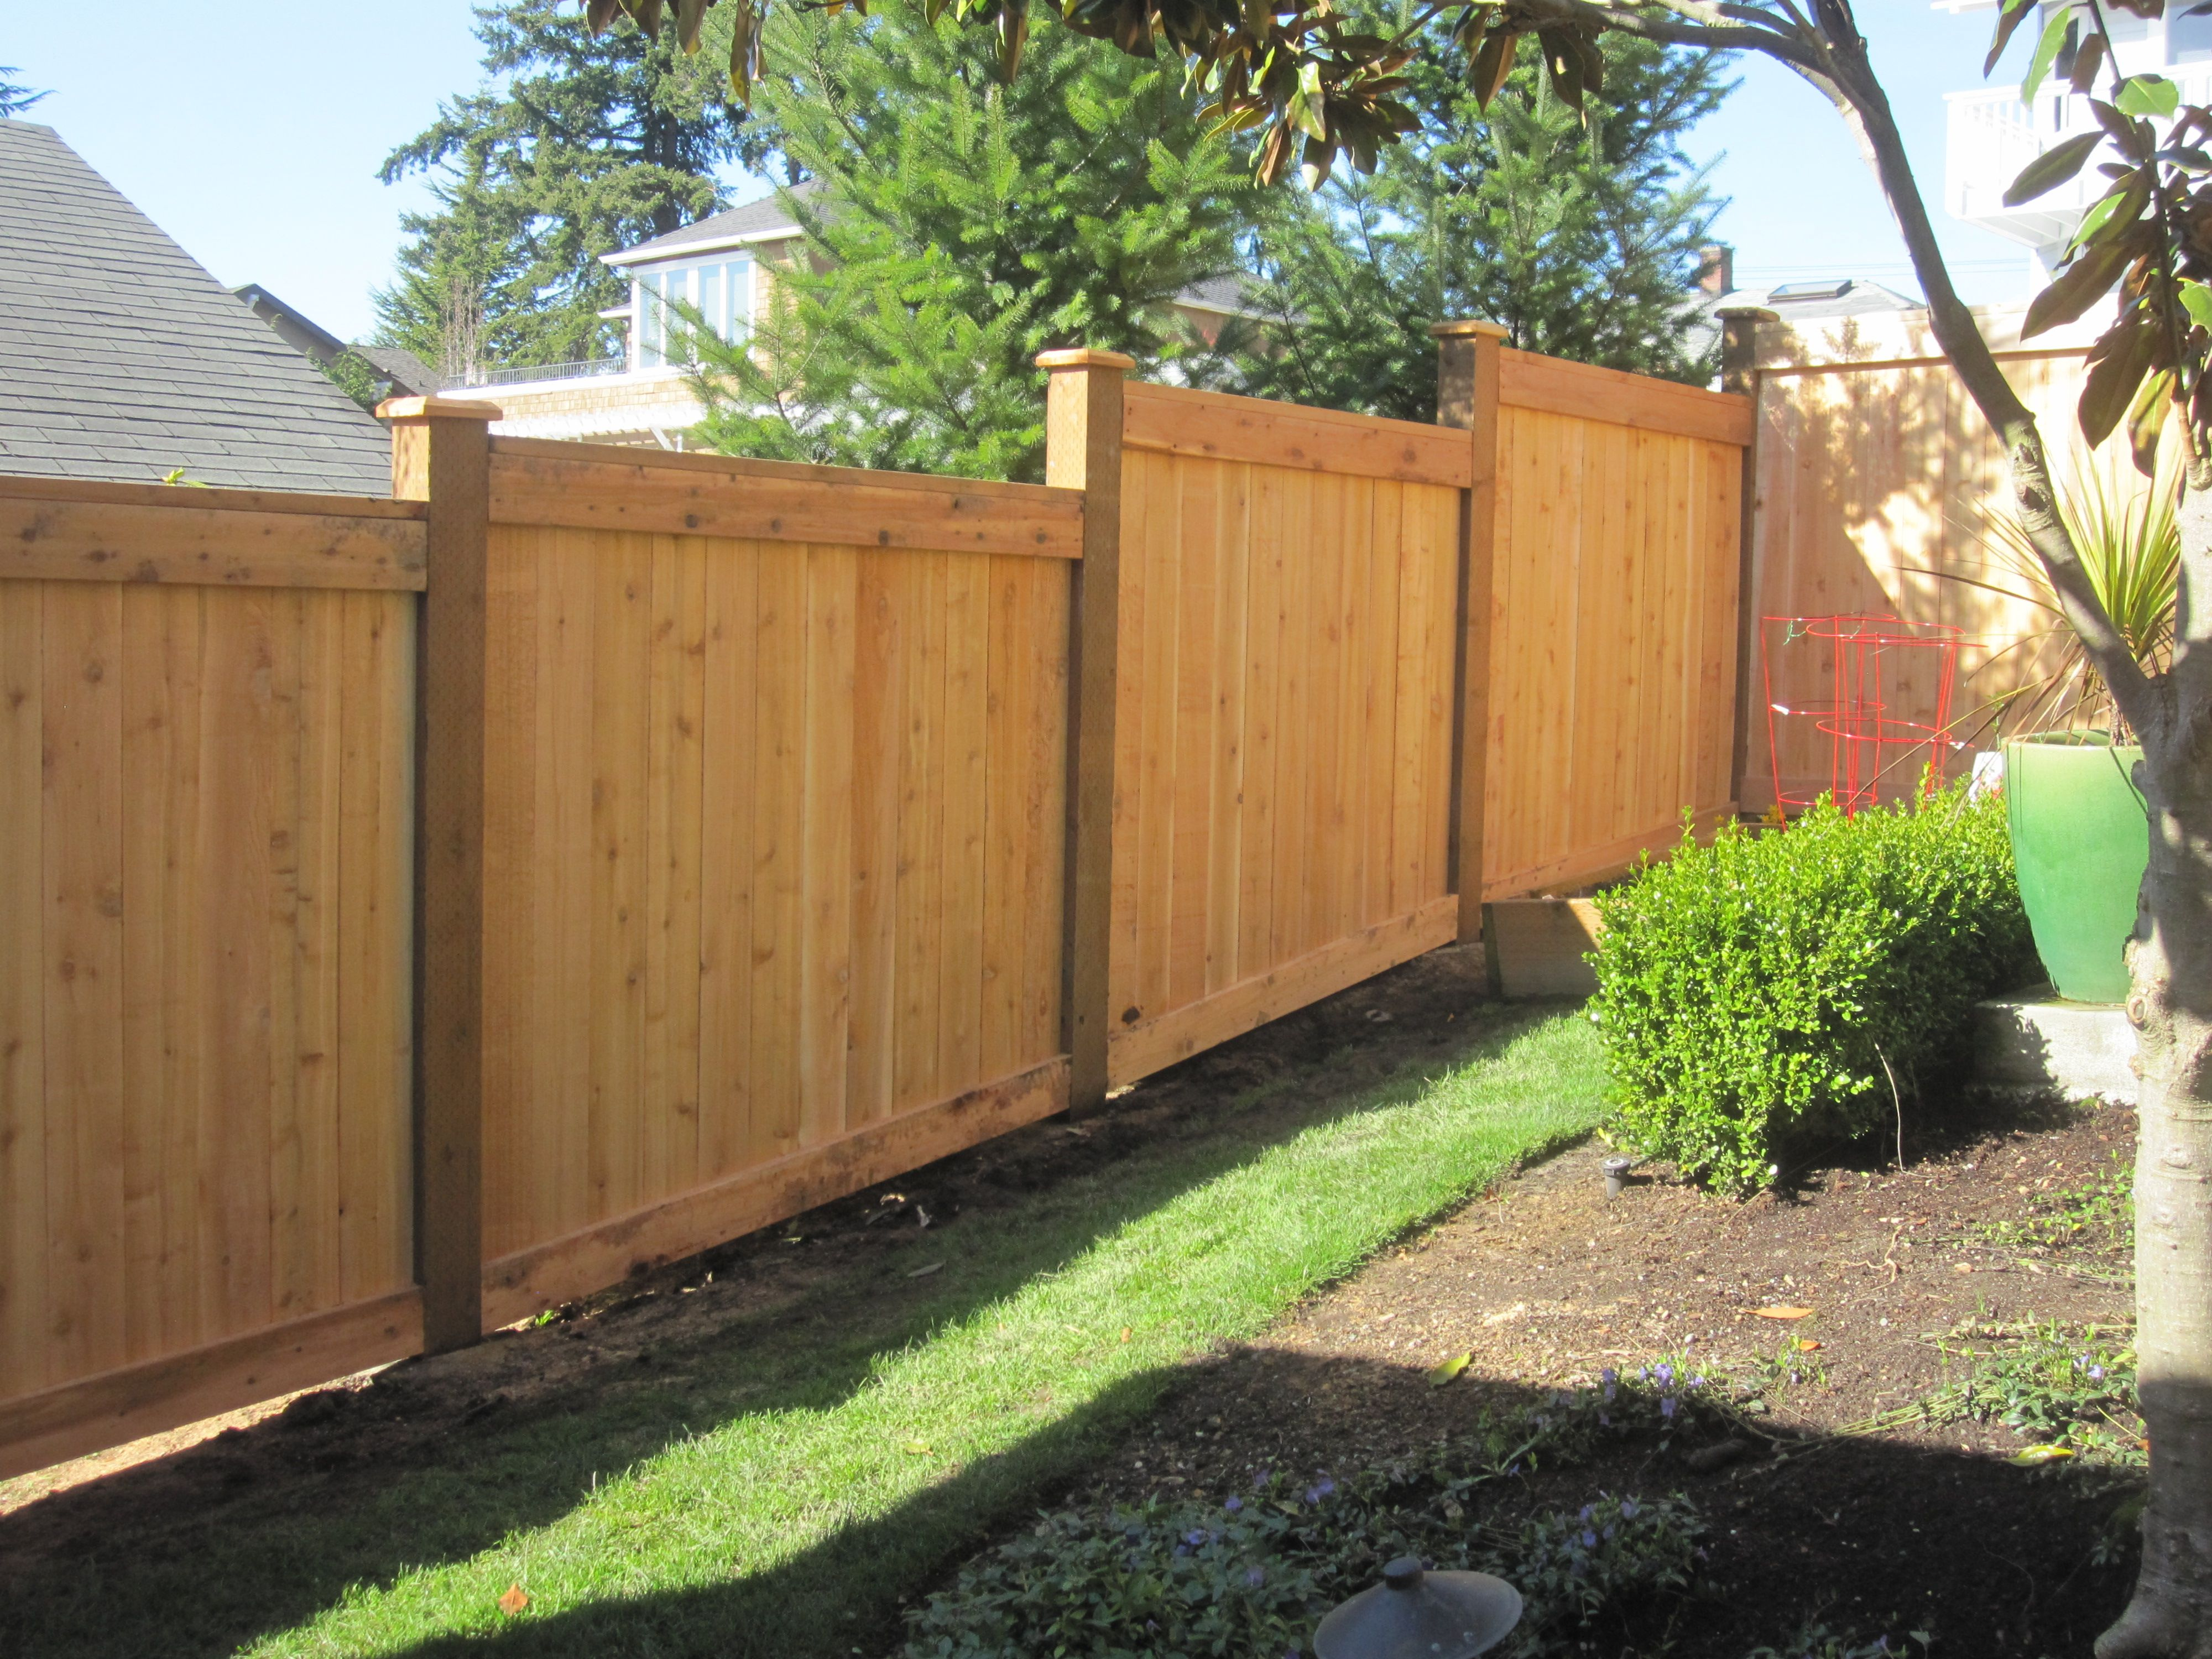 Stepped full panel cedar wooden fence with grade